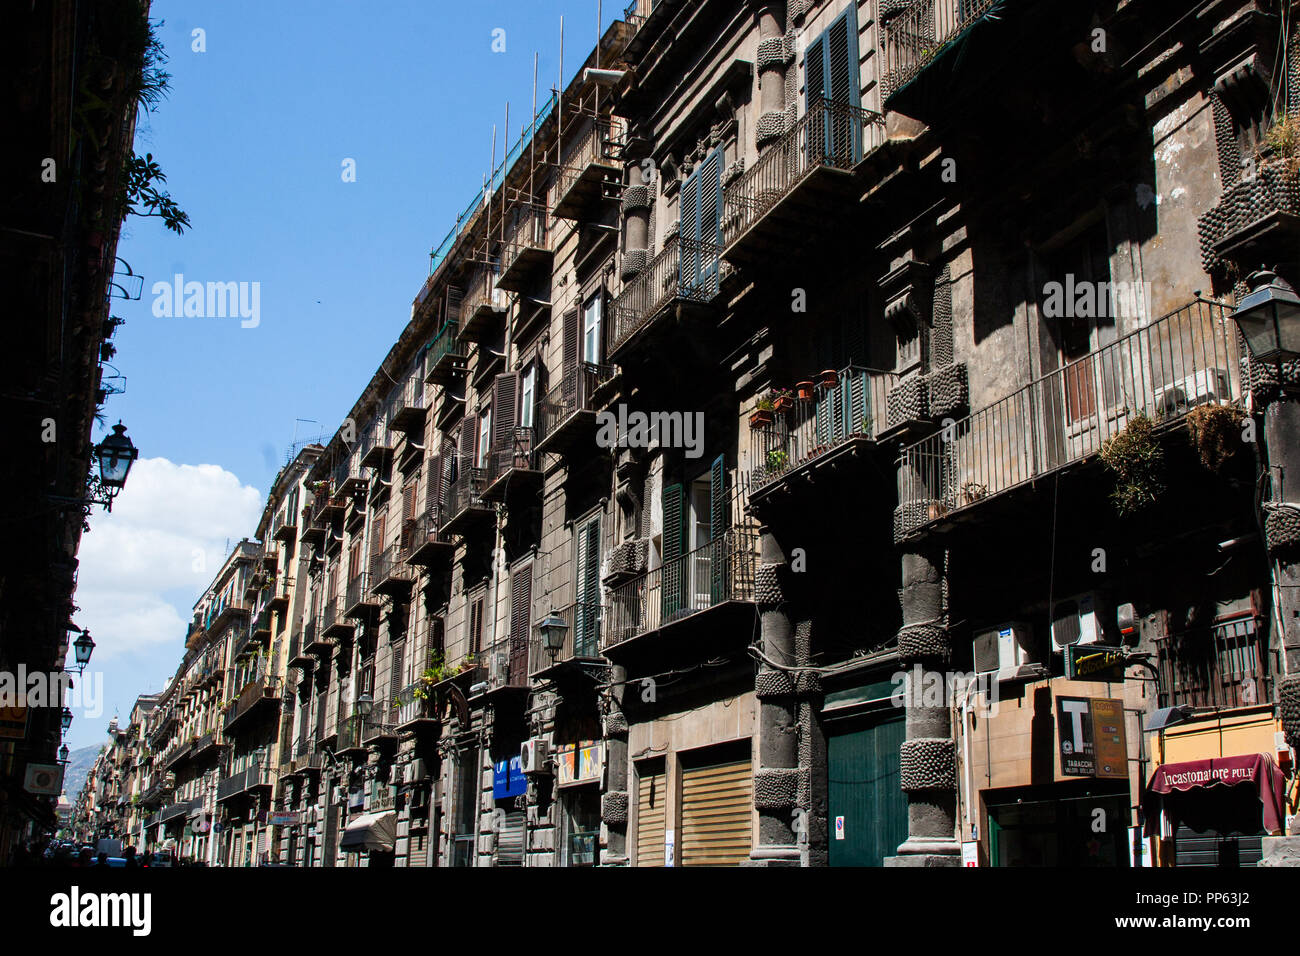 Wallpaper Background Of Palermo Old Residential Building Street View On A Summer Day No People Sicily Italy